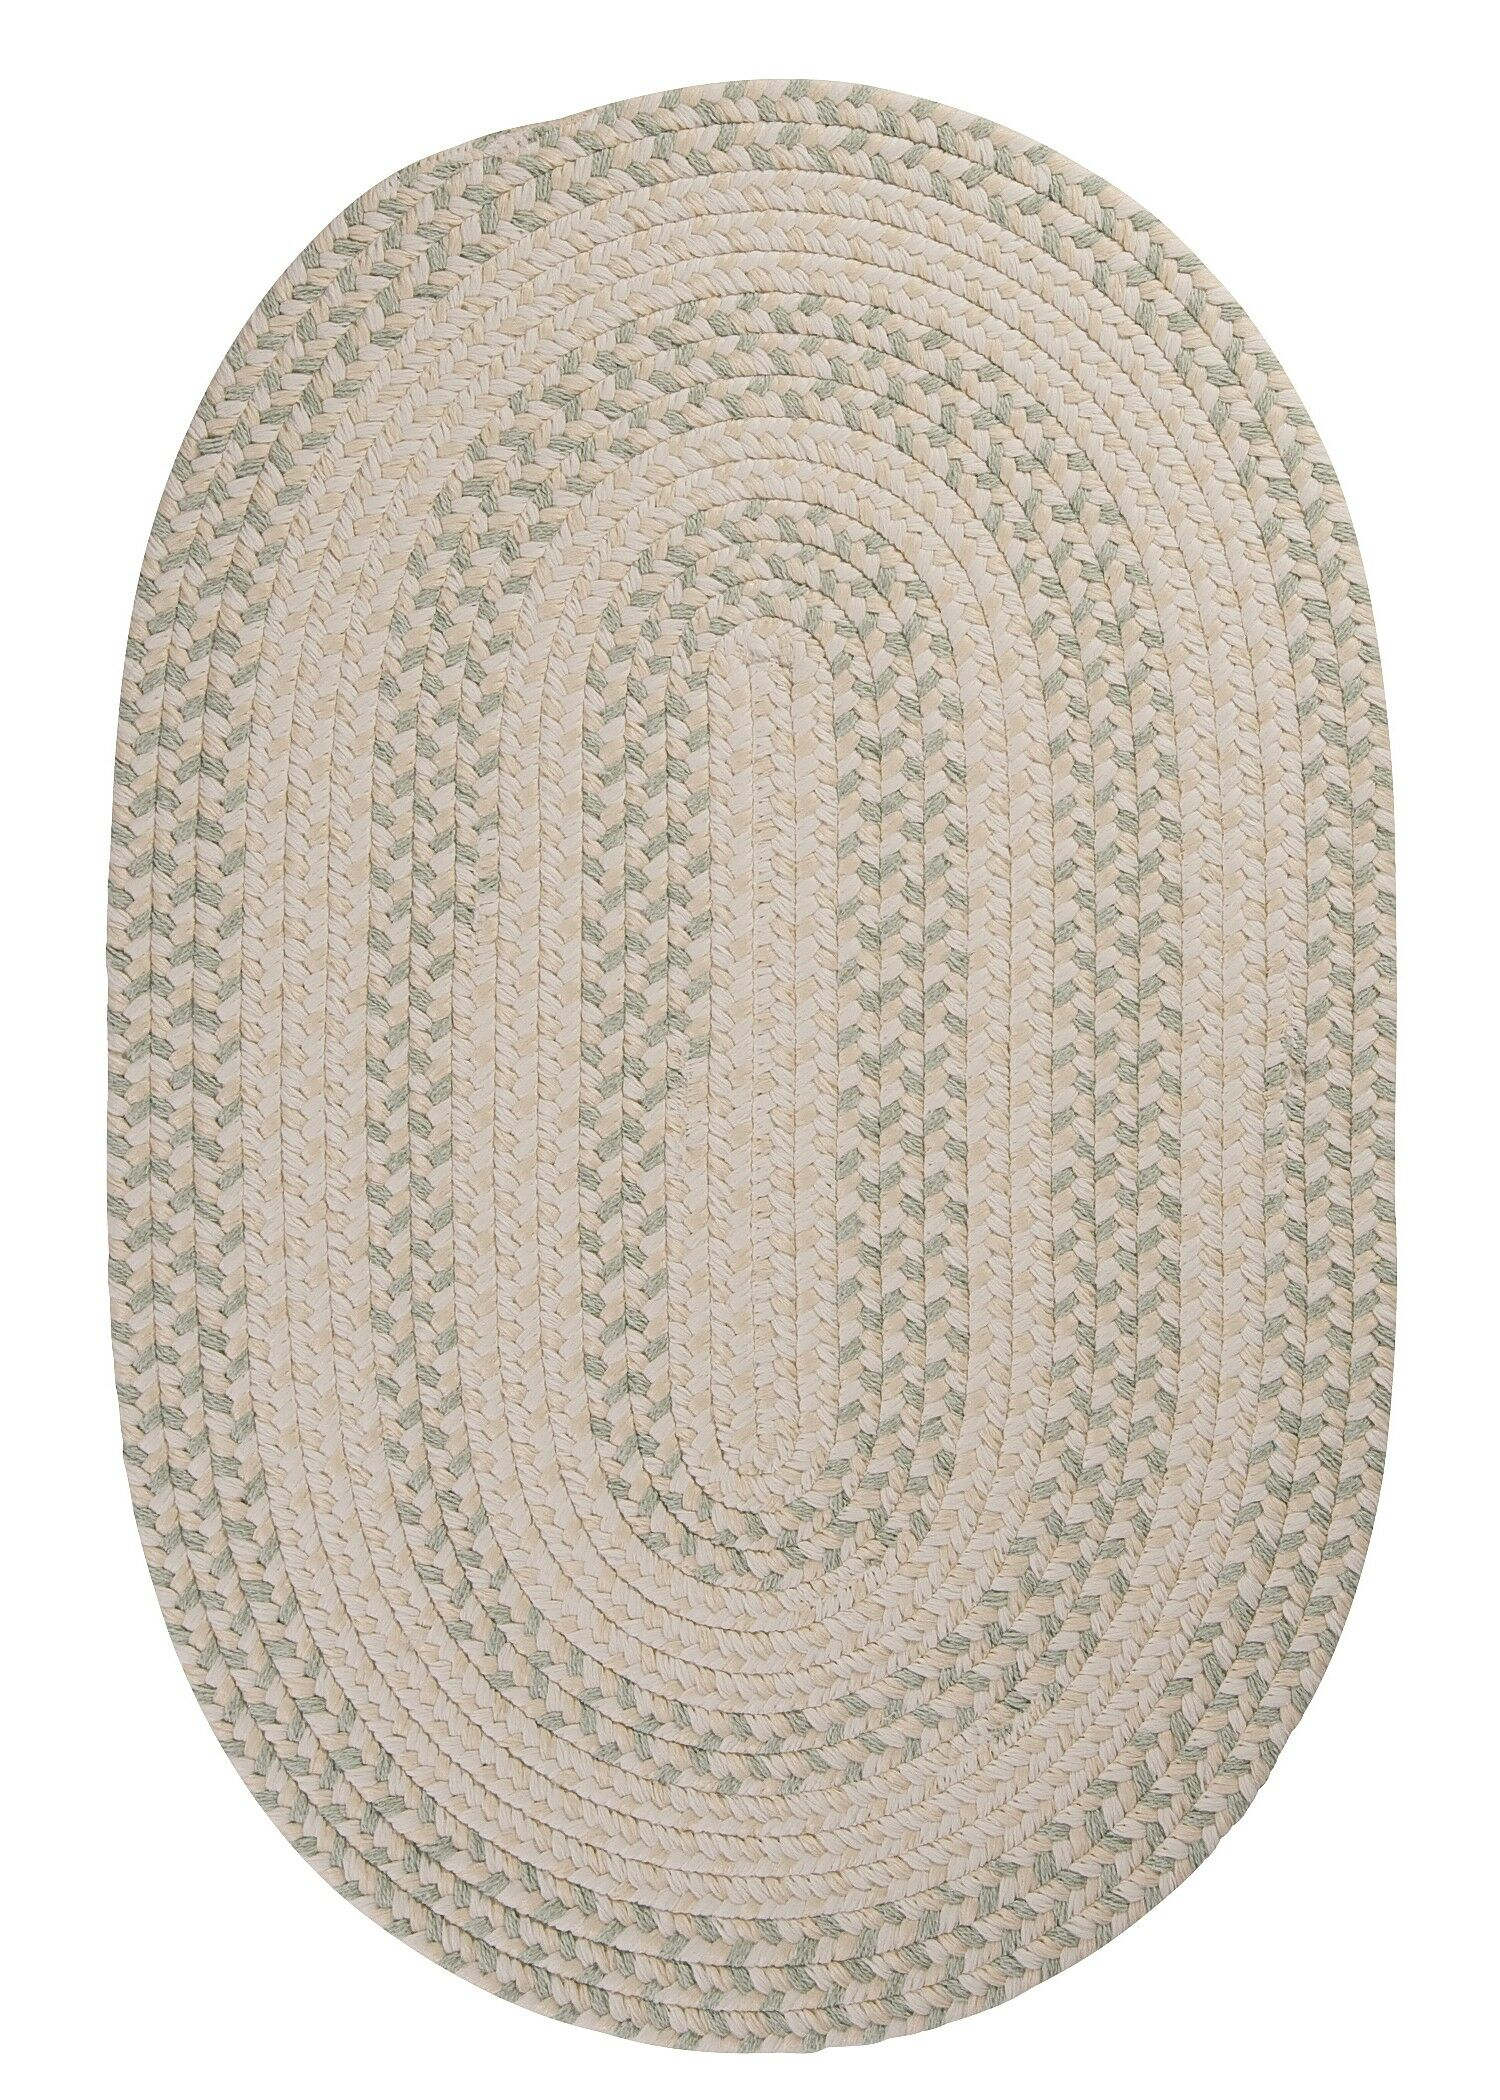 Elmwood Tarragon Braided Area Rug Rug Size: Runner 2' x 12'